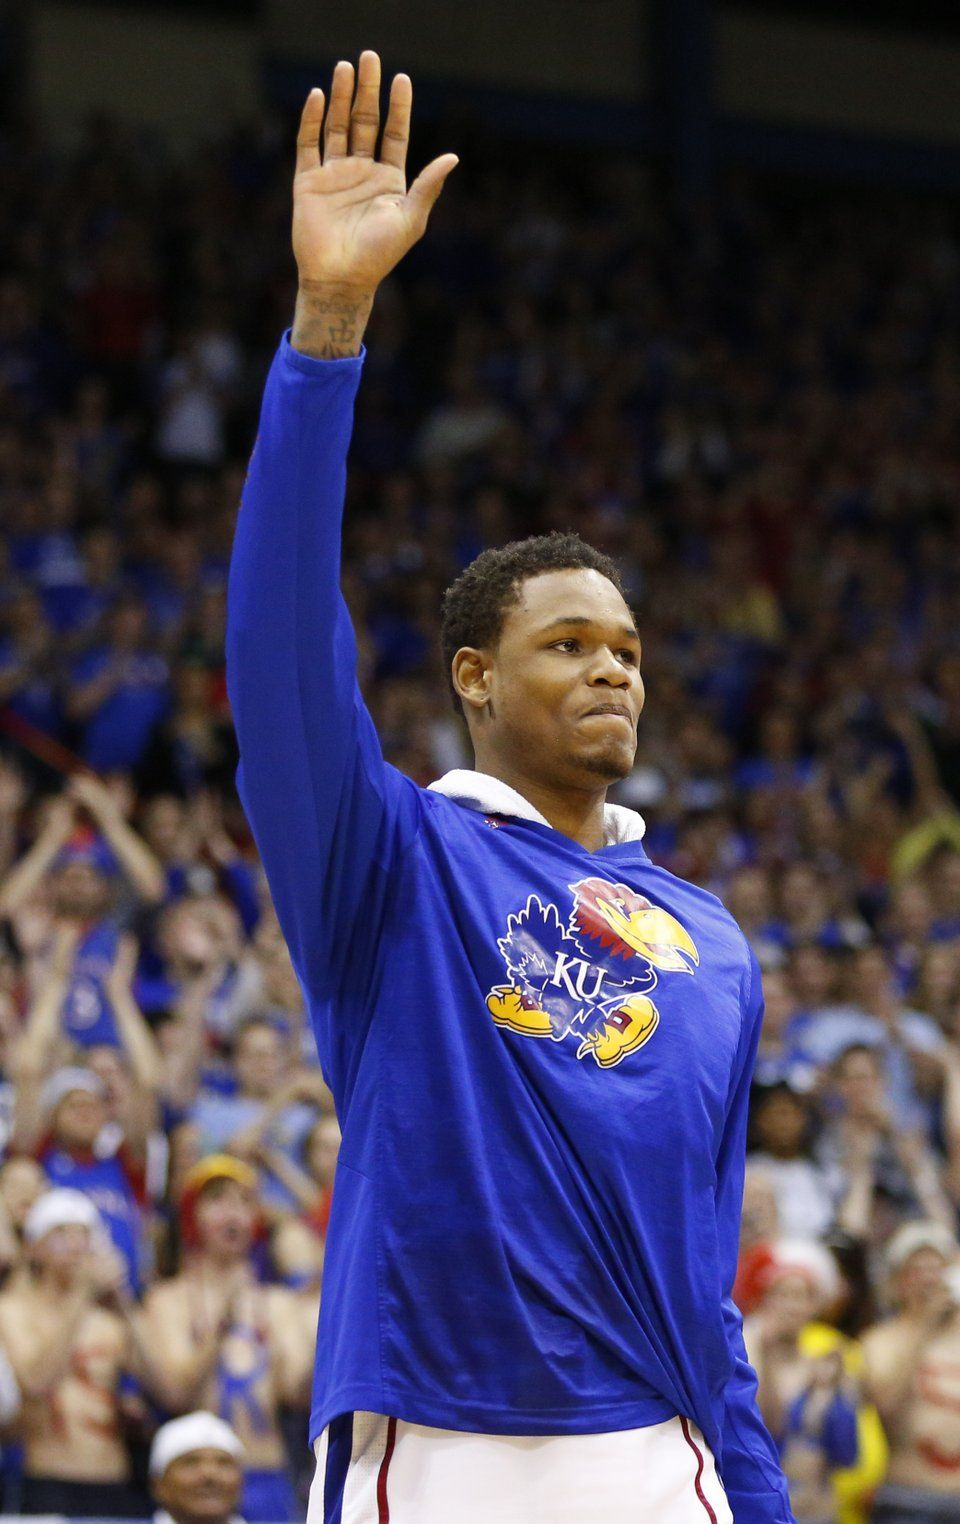 Ben gives a thank you wave to those at Allen Fieldhouse